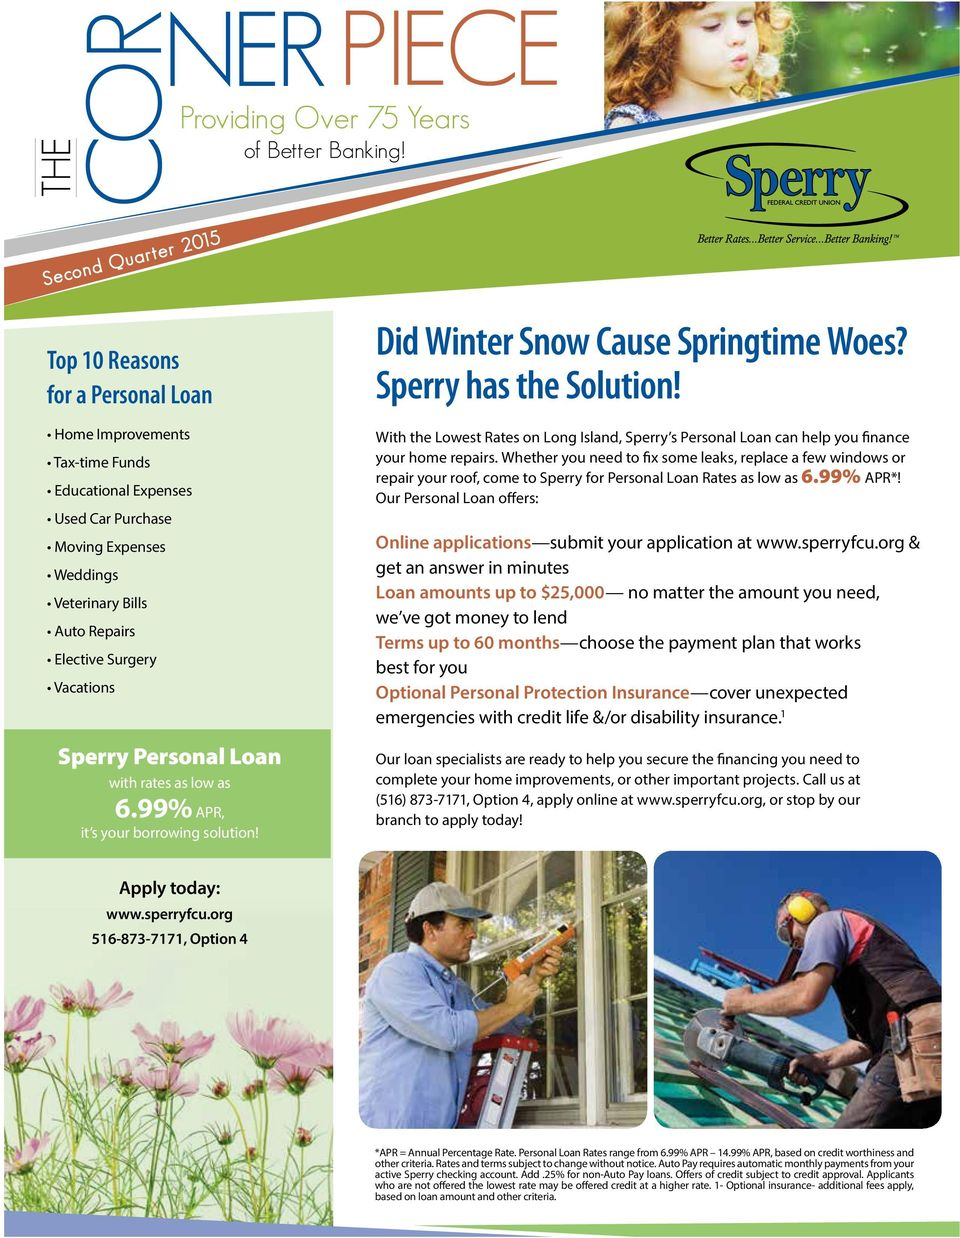 Vacations Sperry Personal Loan with rates as low as 6.99% APR, it s your borrowing solution! Did Winter Snow Cause Springtime Woes? Sperry has the Solution!